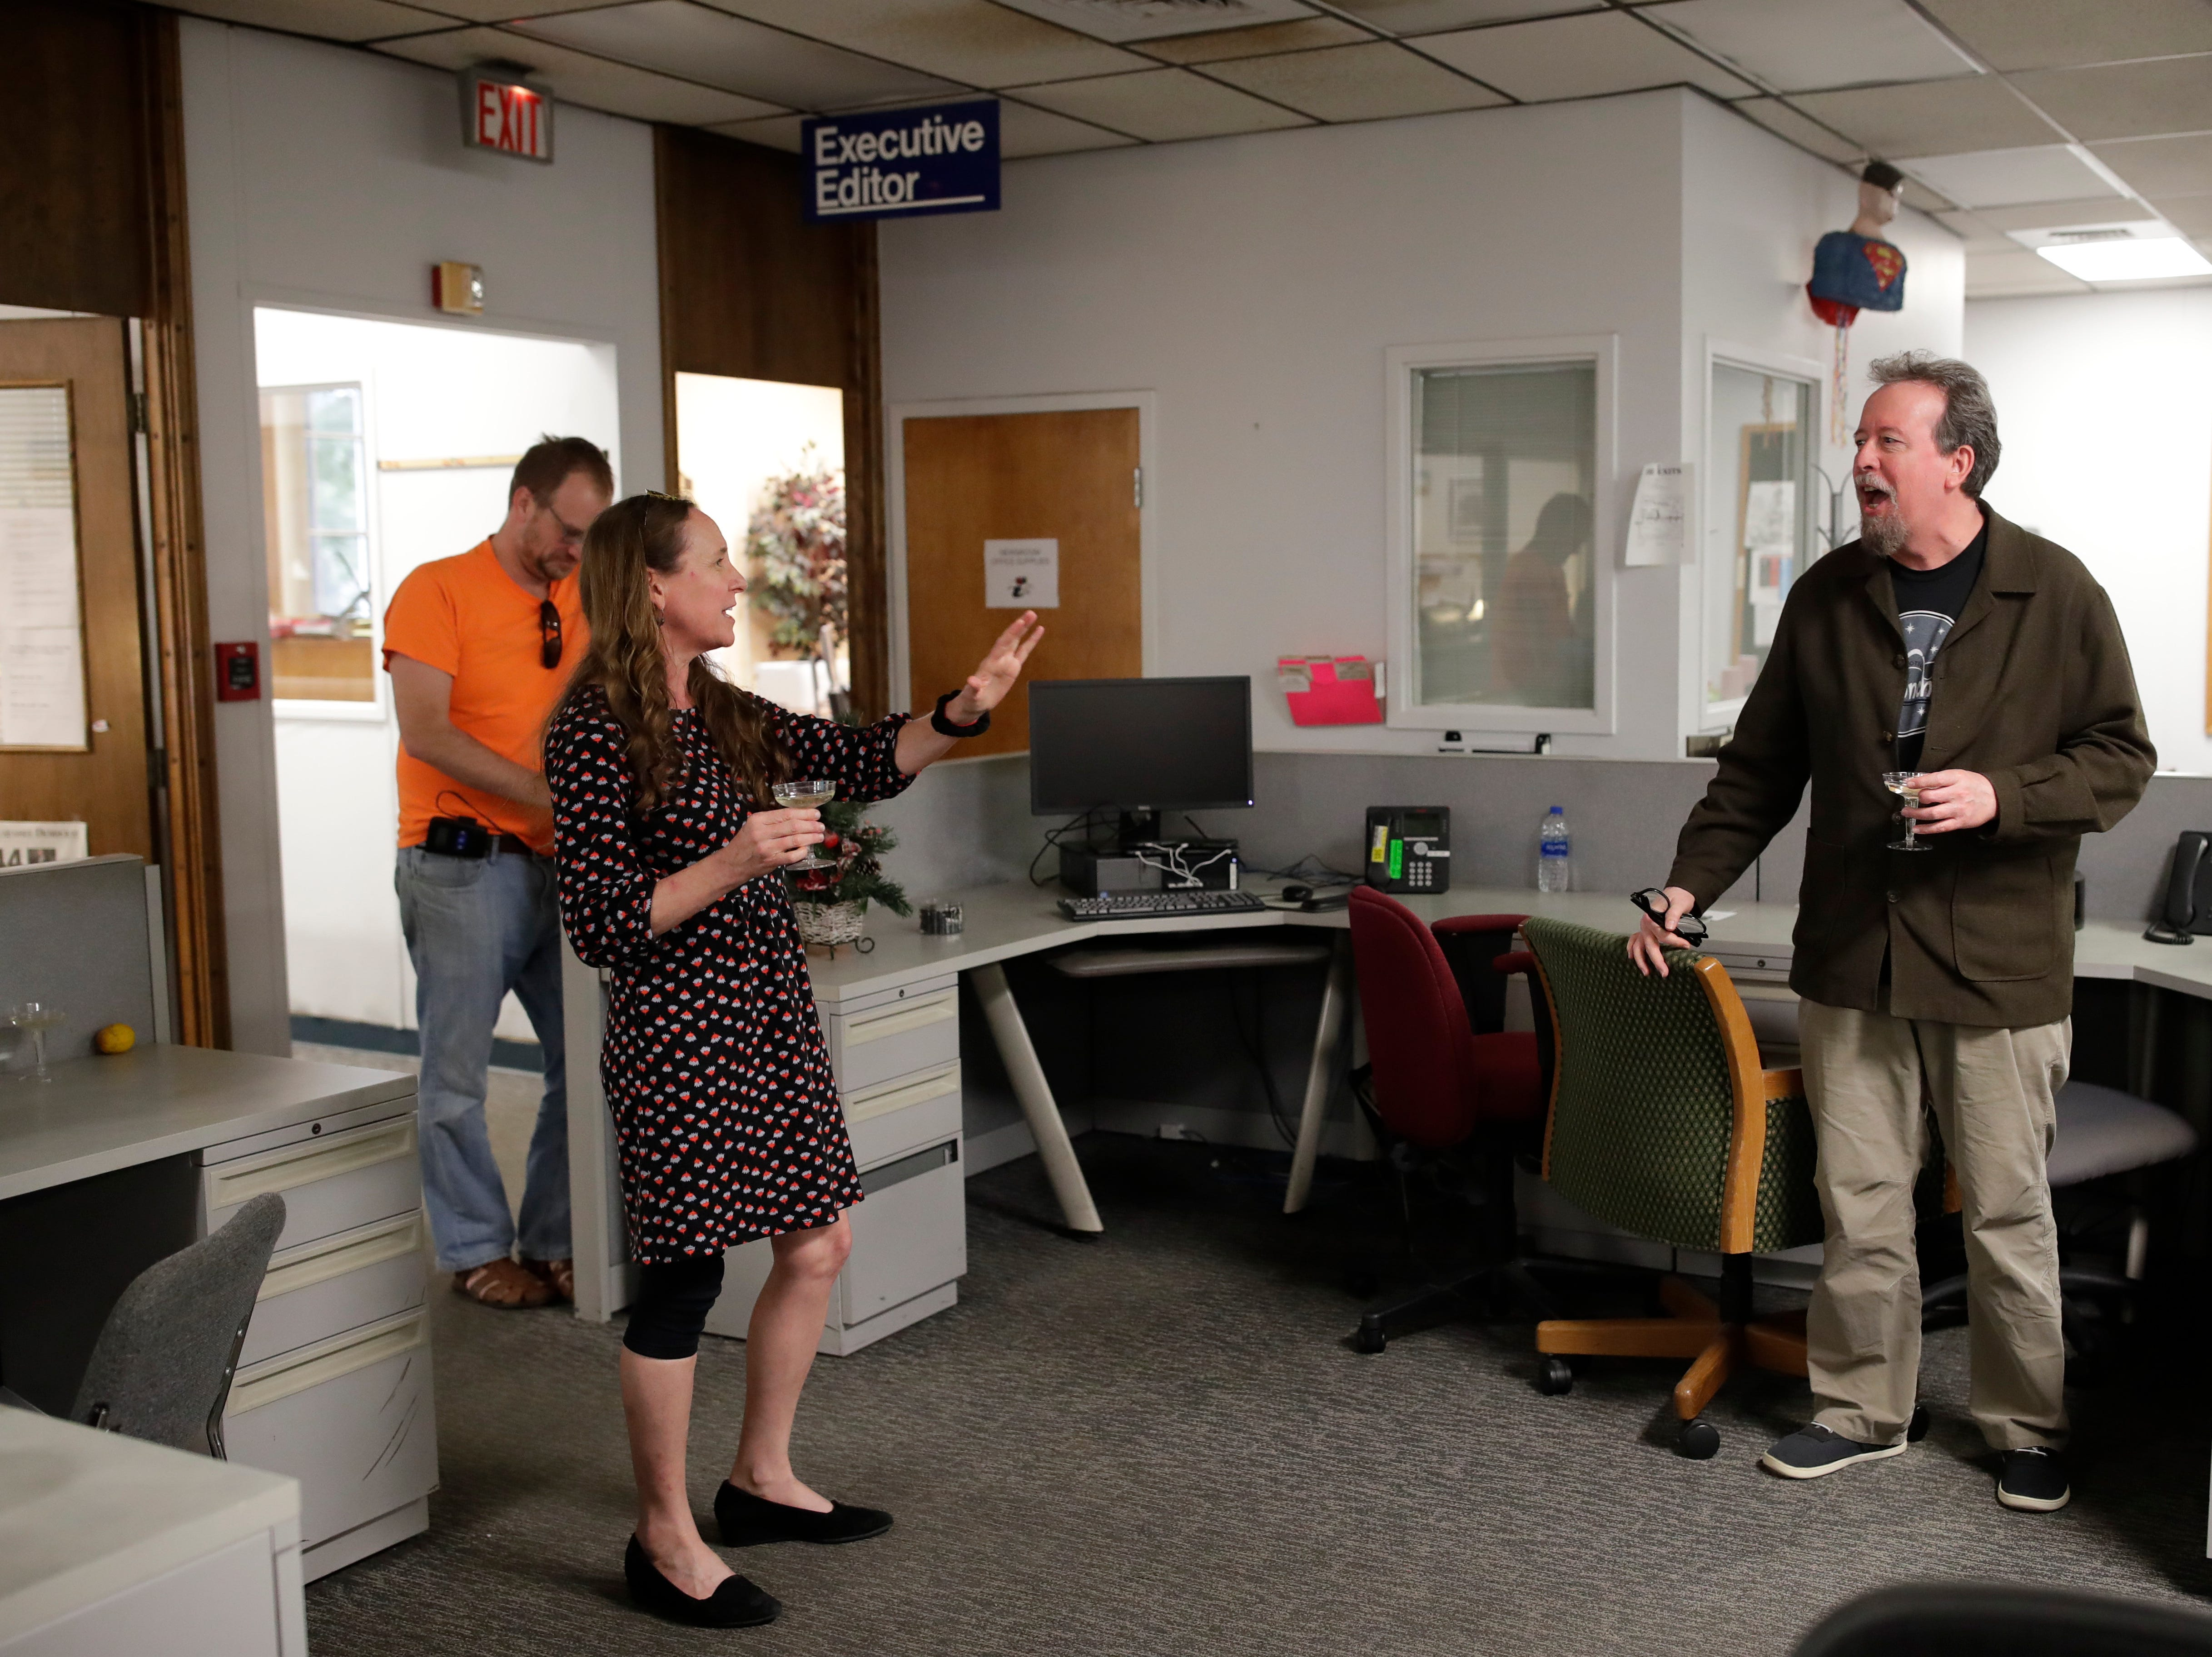 News Director Jennifer Portman gives a toast to Former Arts and Entertainment Editor Mark Hinson on his last day of work at the Tallahassee Democrat Wednesday, Jan. 2, 2019.